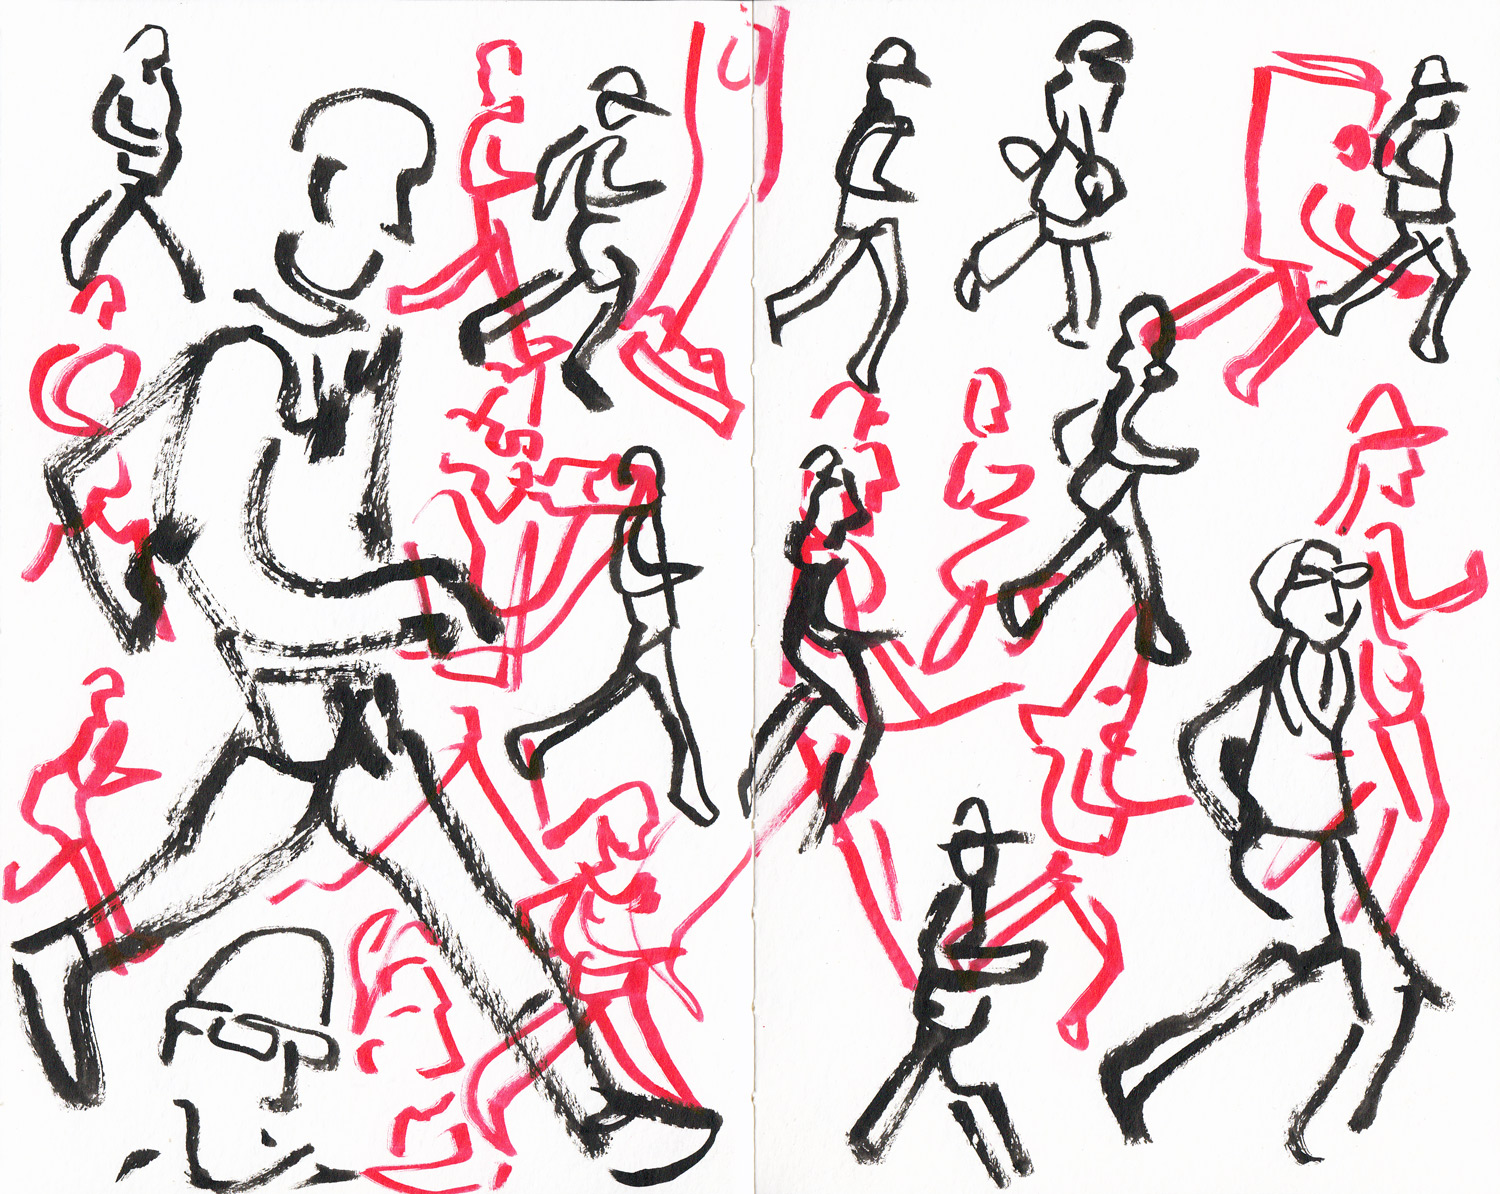 runners-crowd-duo.jpg